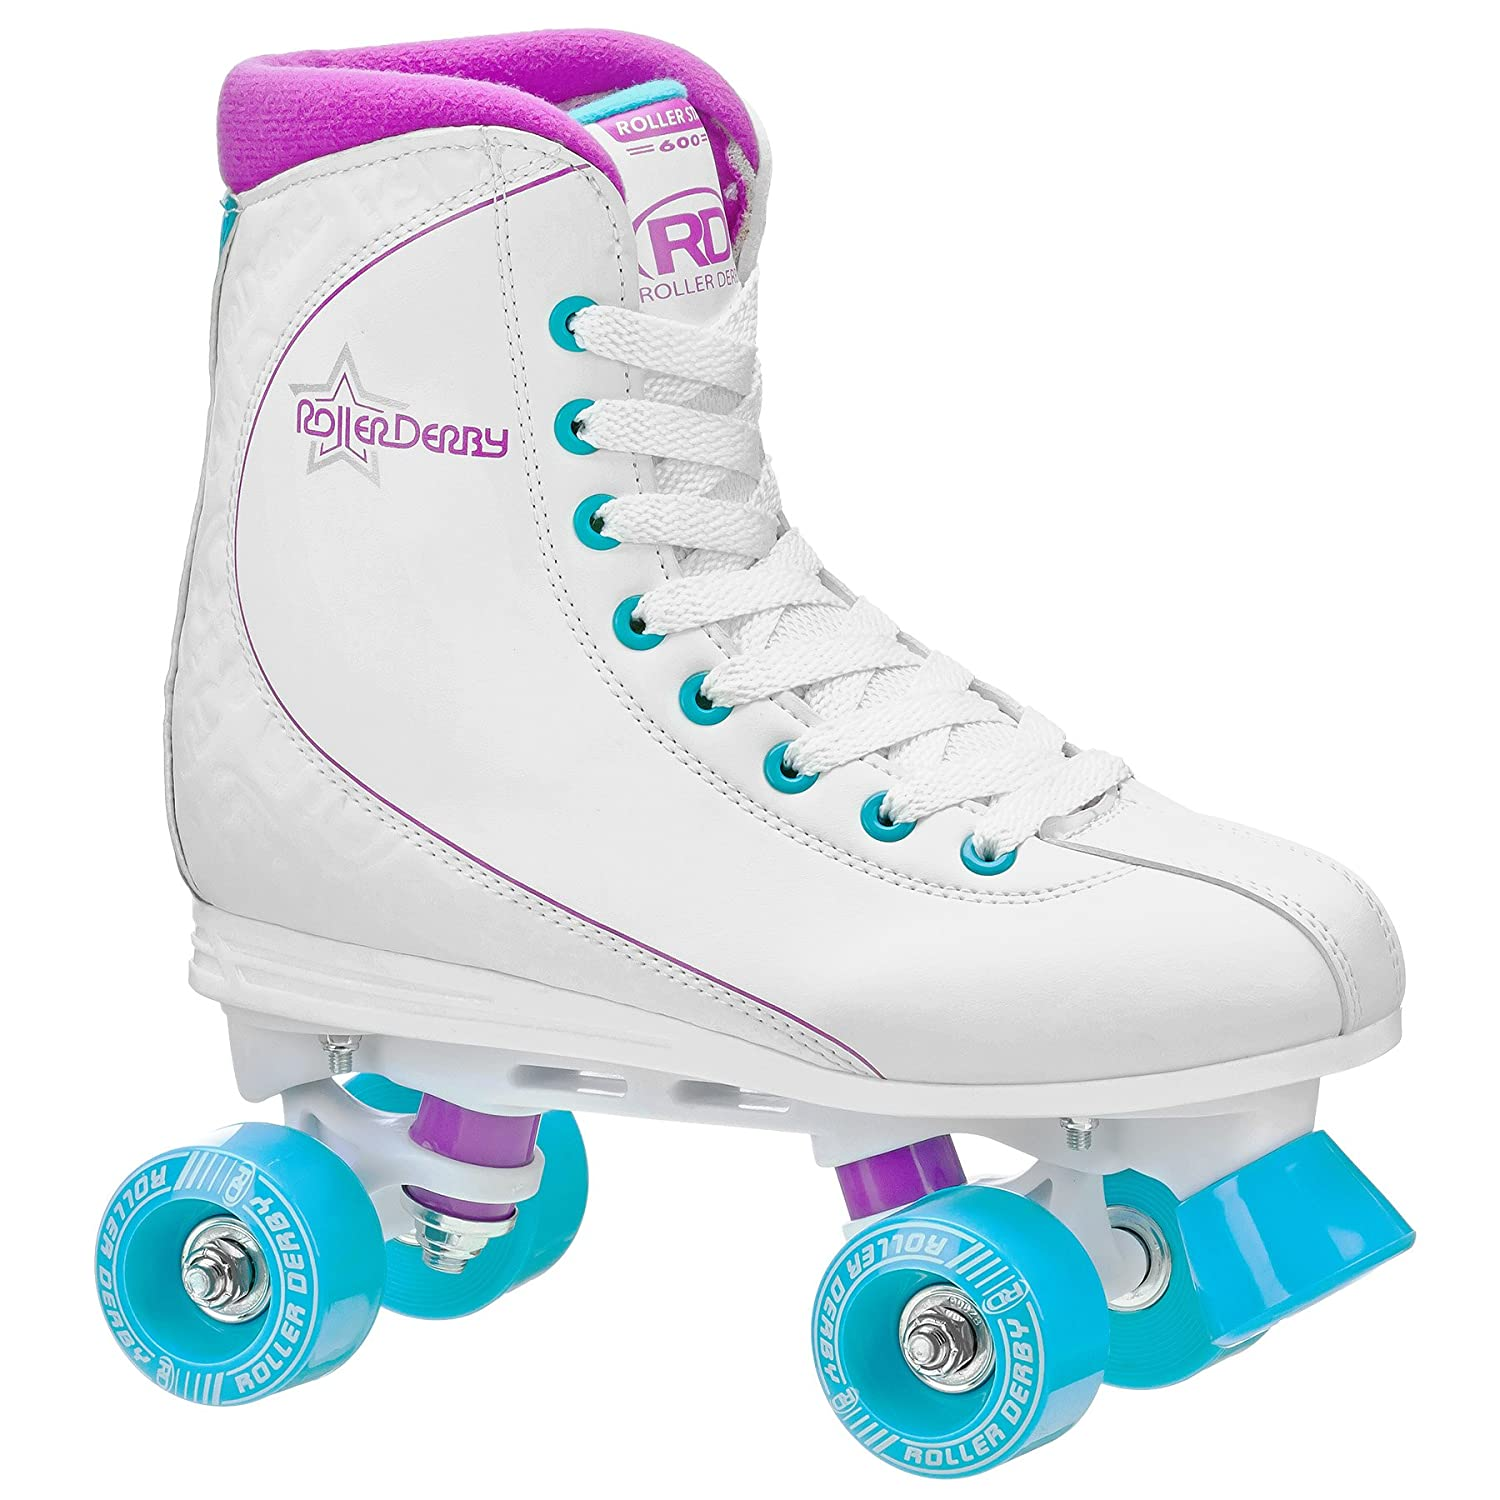 Quad roller skates amazon - Buy Roller Derby U725w 06 Womens Roller Star 600 Quad Skate Size 06 White Lavender Online At Low Prices In India Amazon In